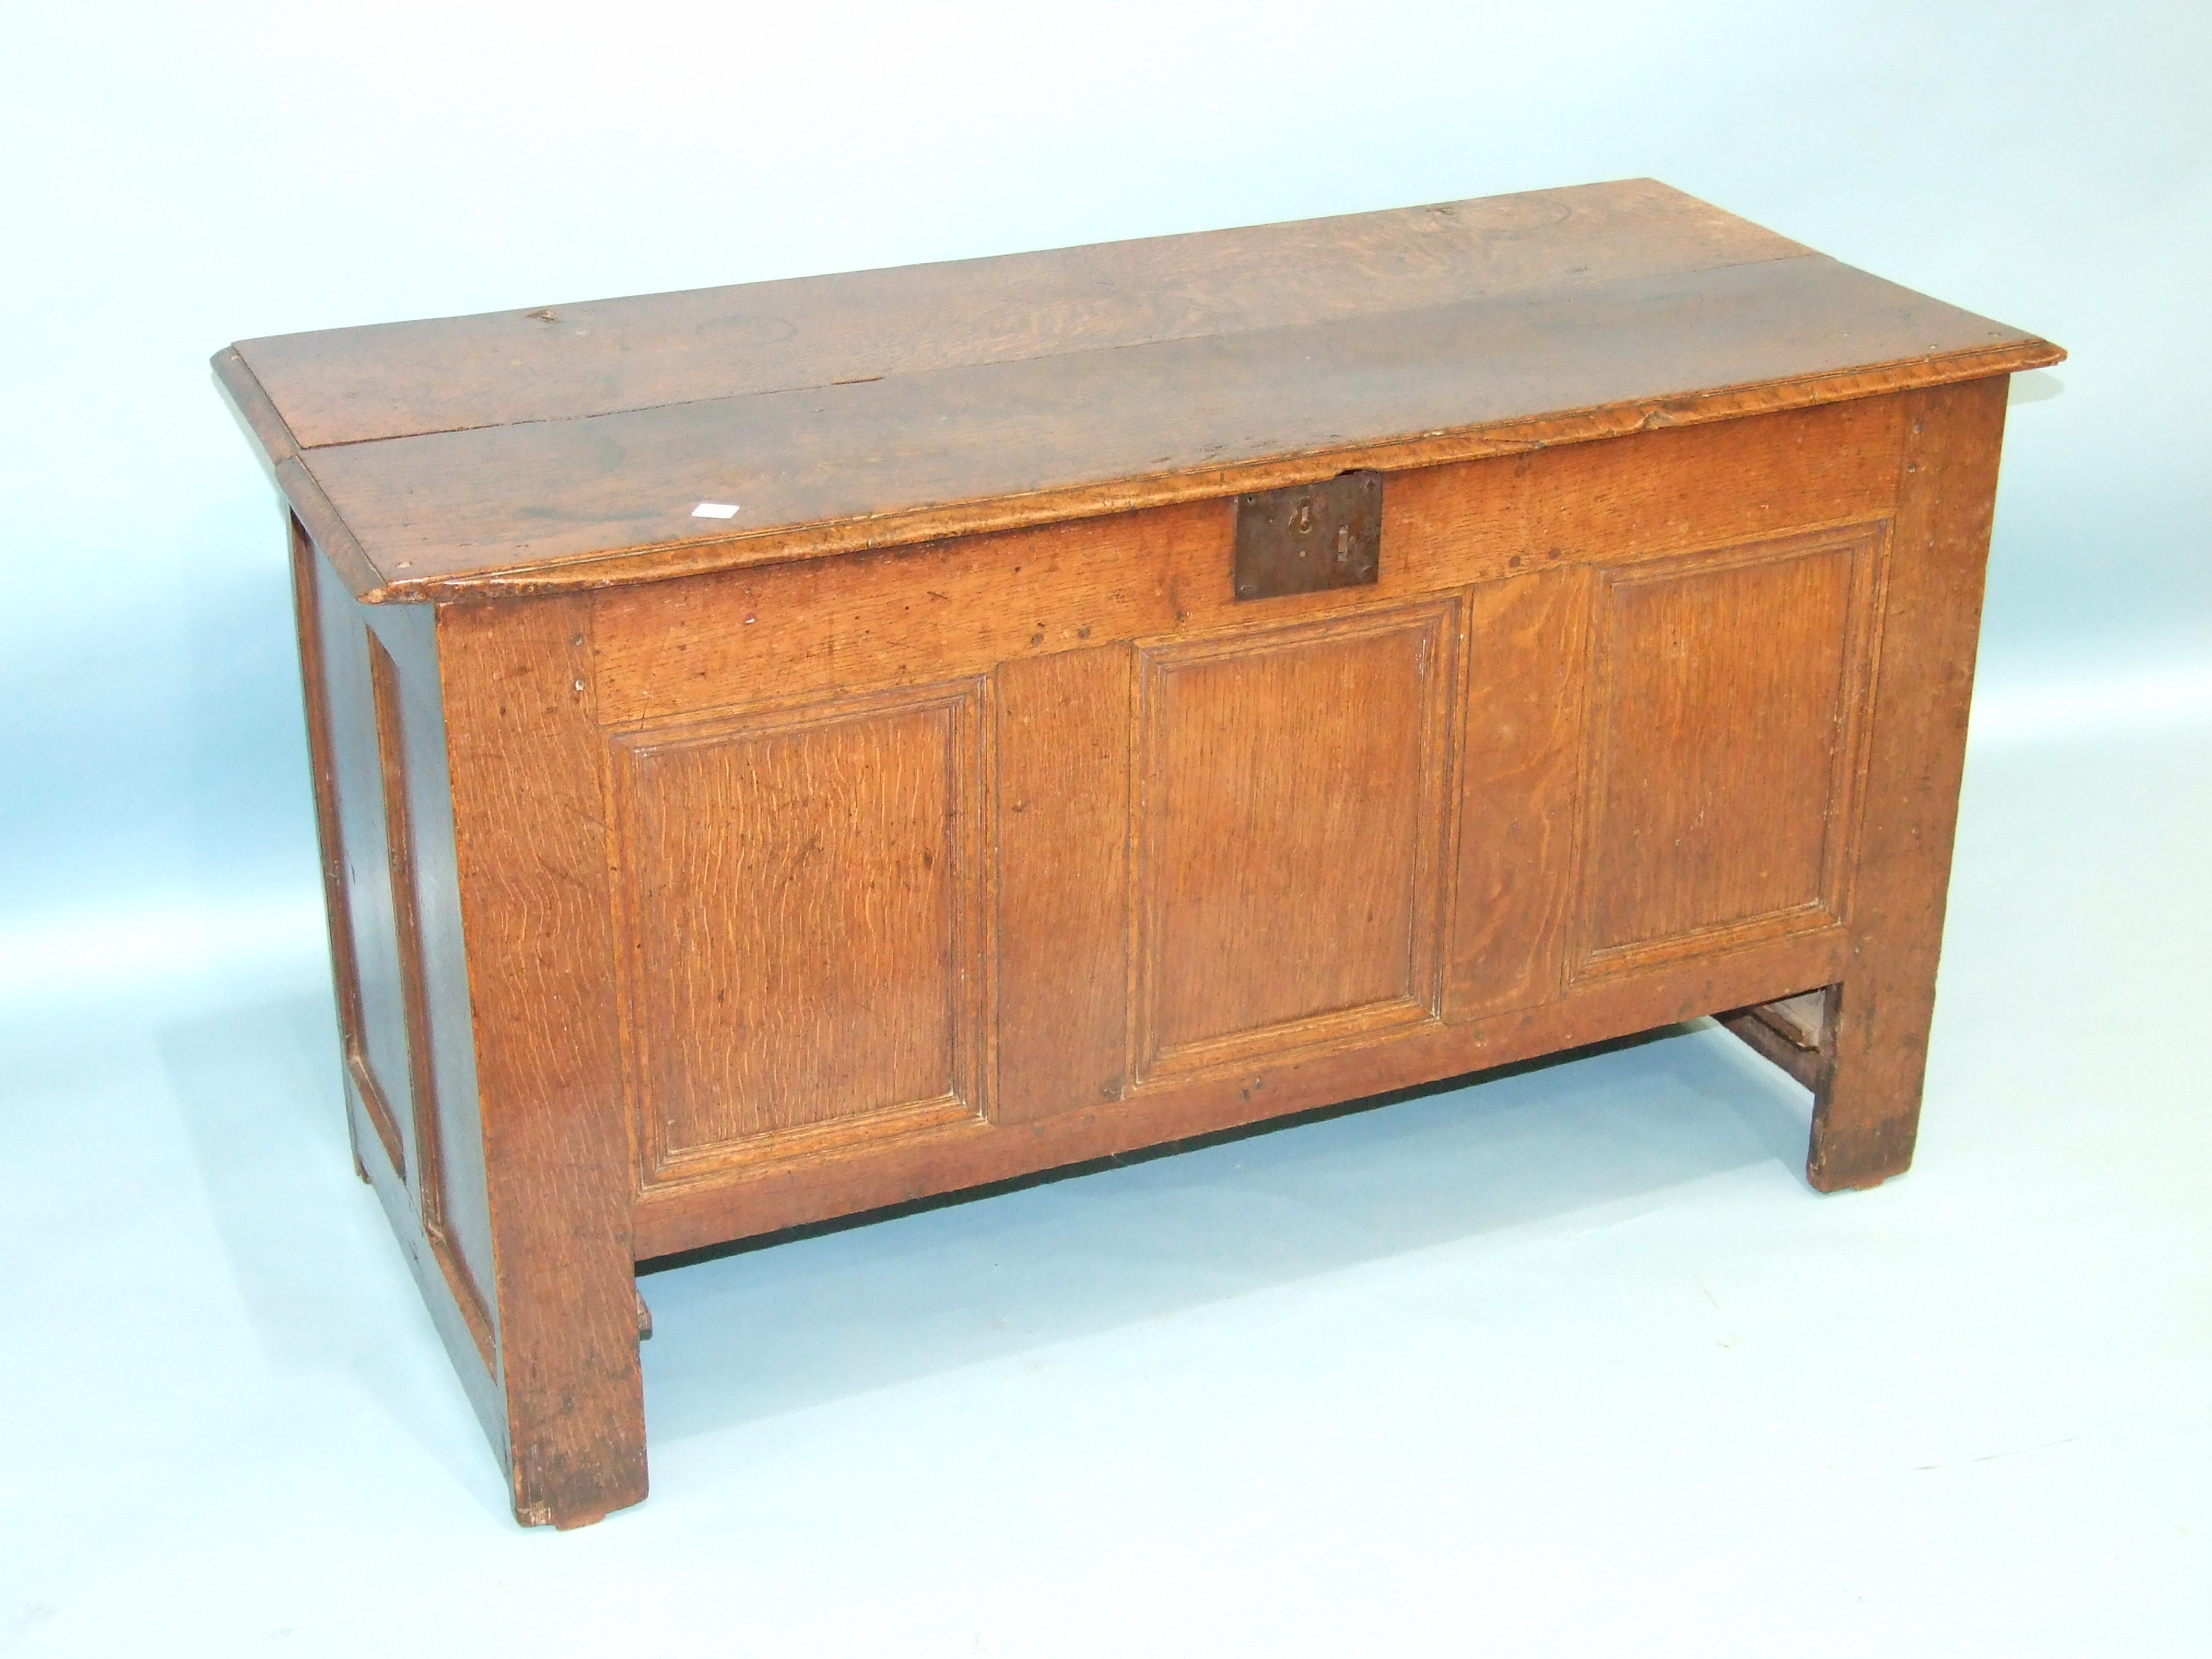 Lot 76 - An 18th century oak panelled coffer with hinged lid, (repaired), drawer beneath lacking, 121cm